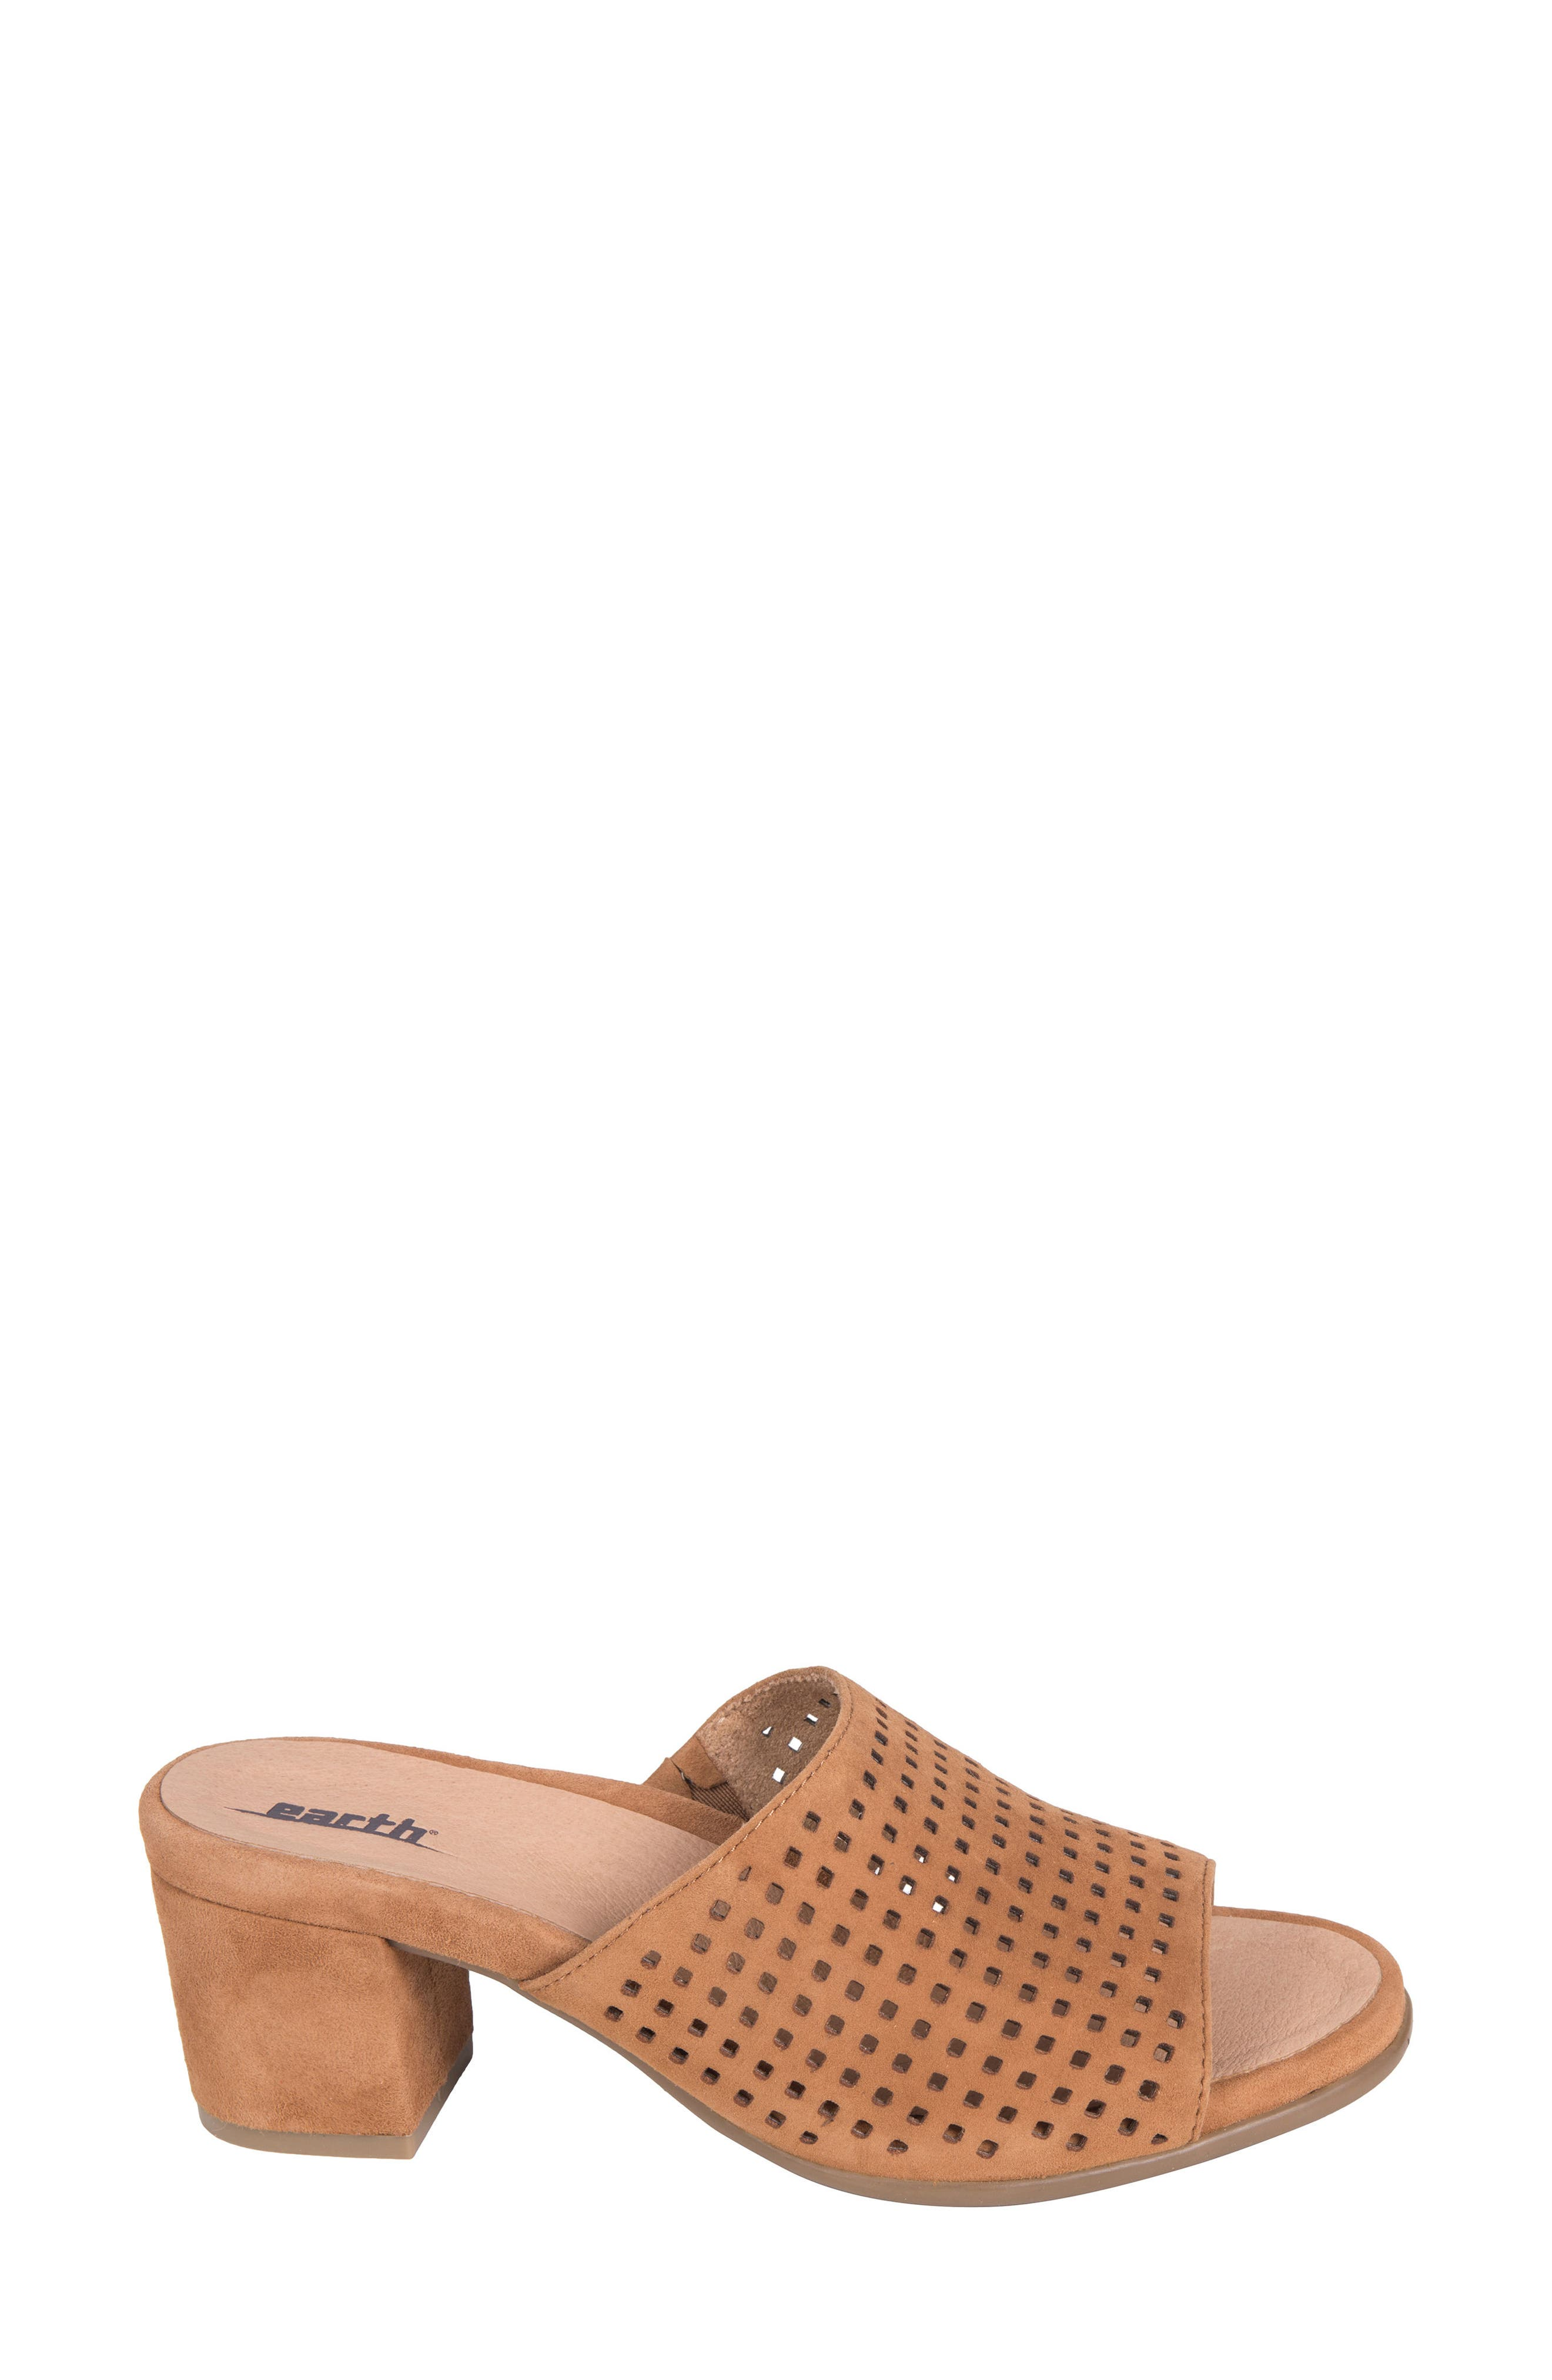 Ibiza Perforated Sandal,                             Alternate thumbnail 3, color,                             Amber Suede